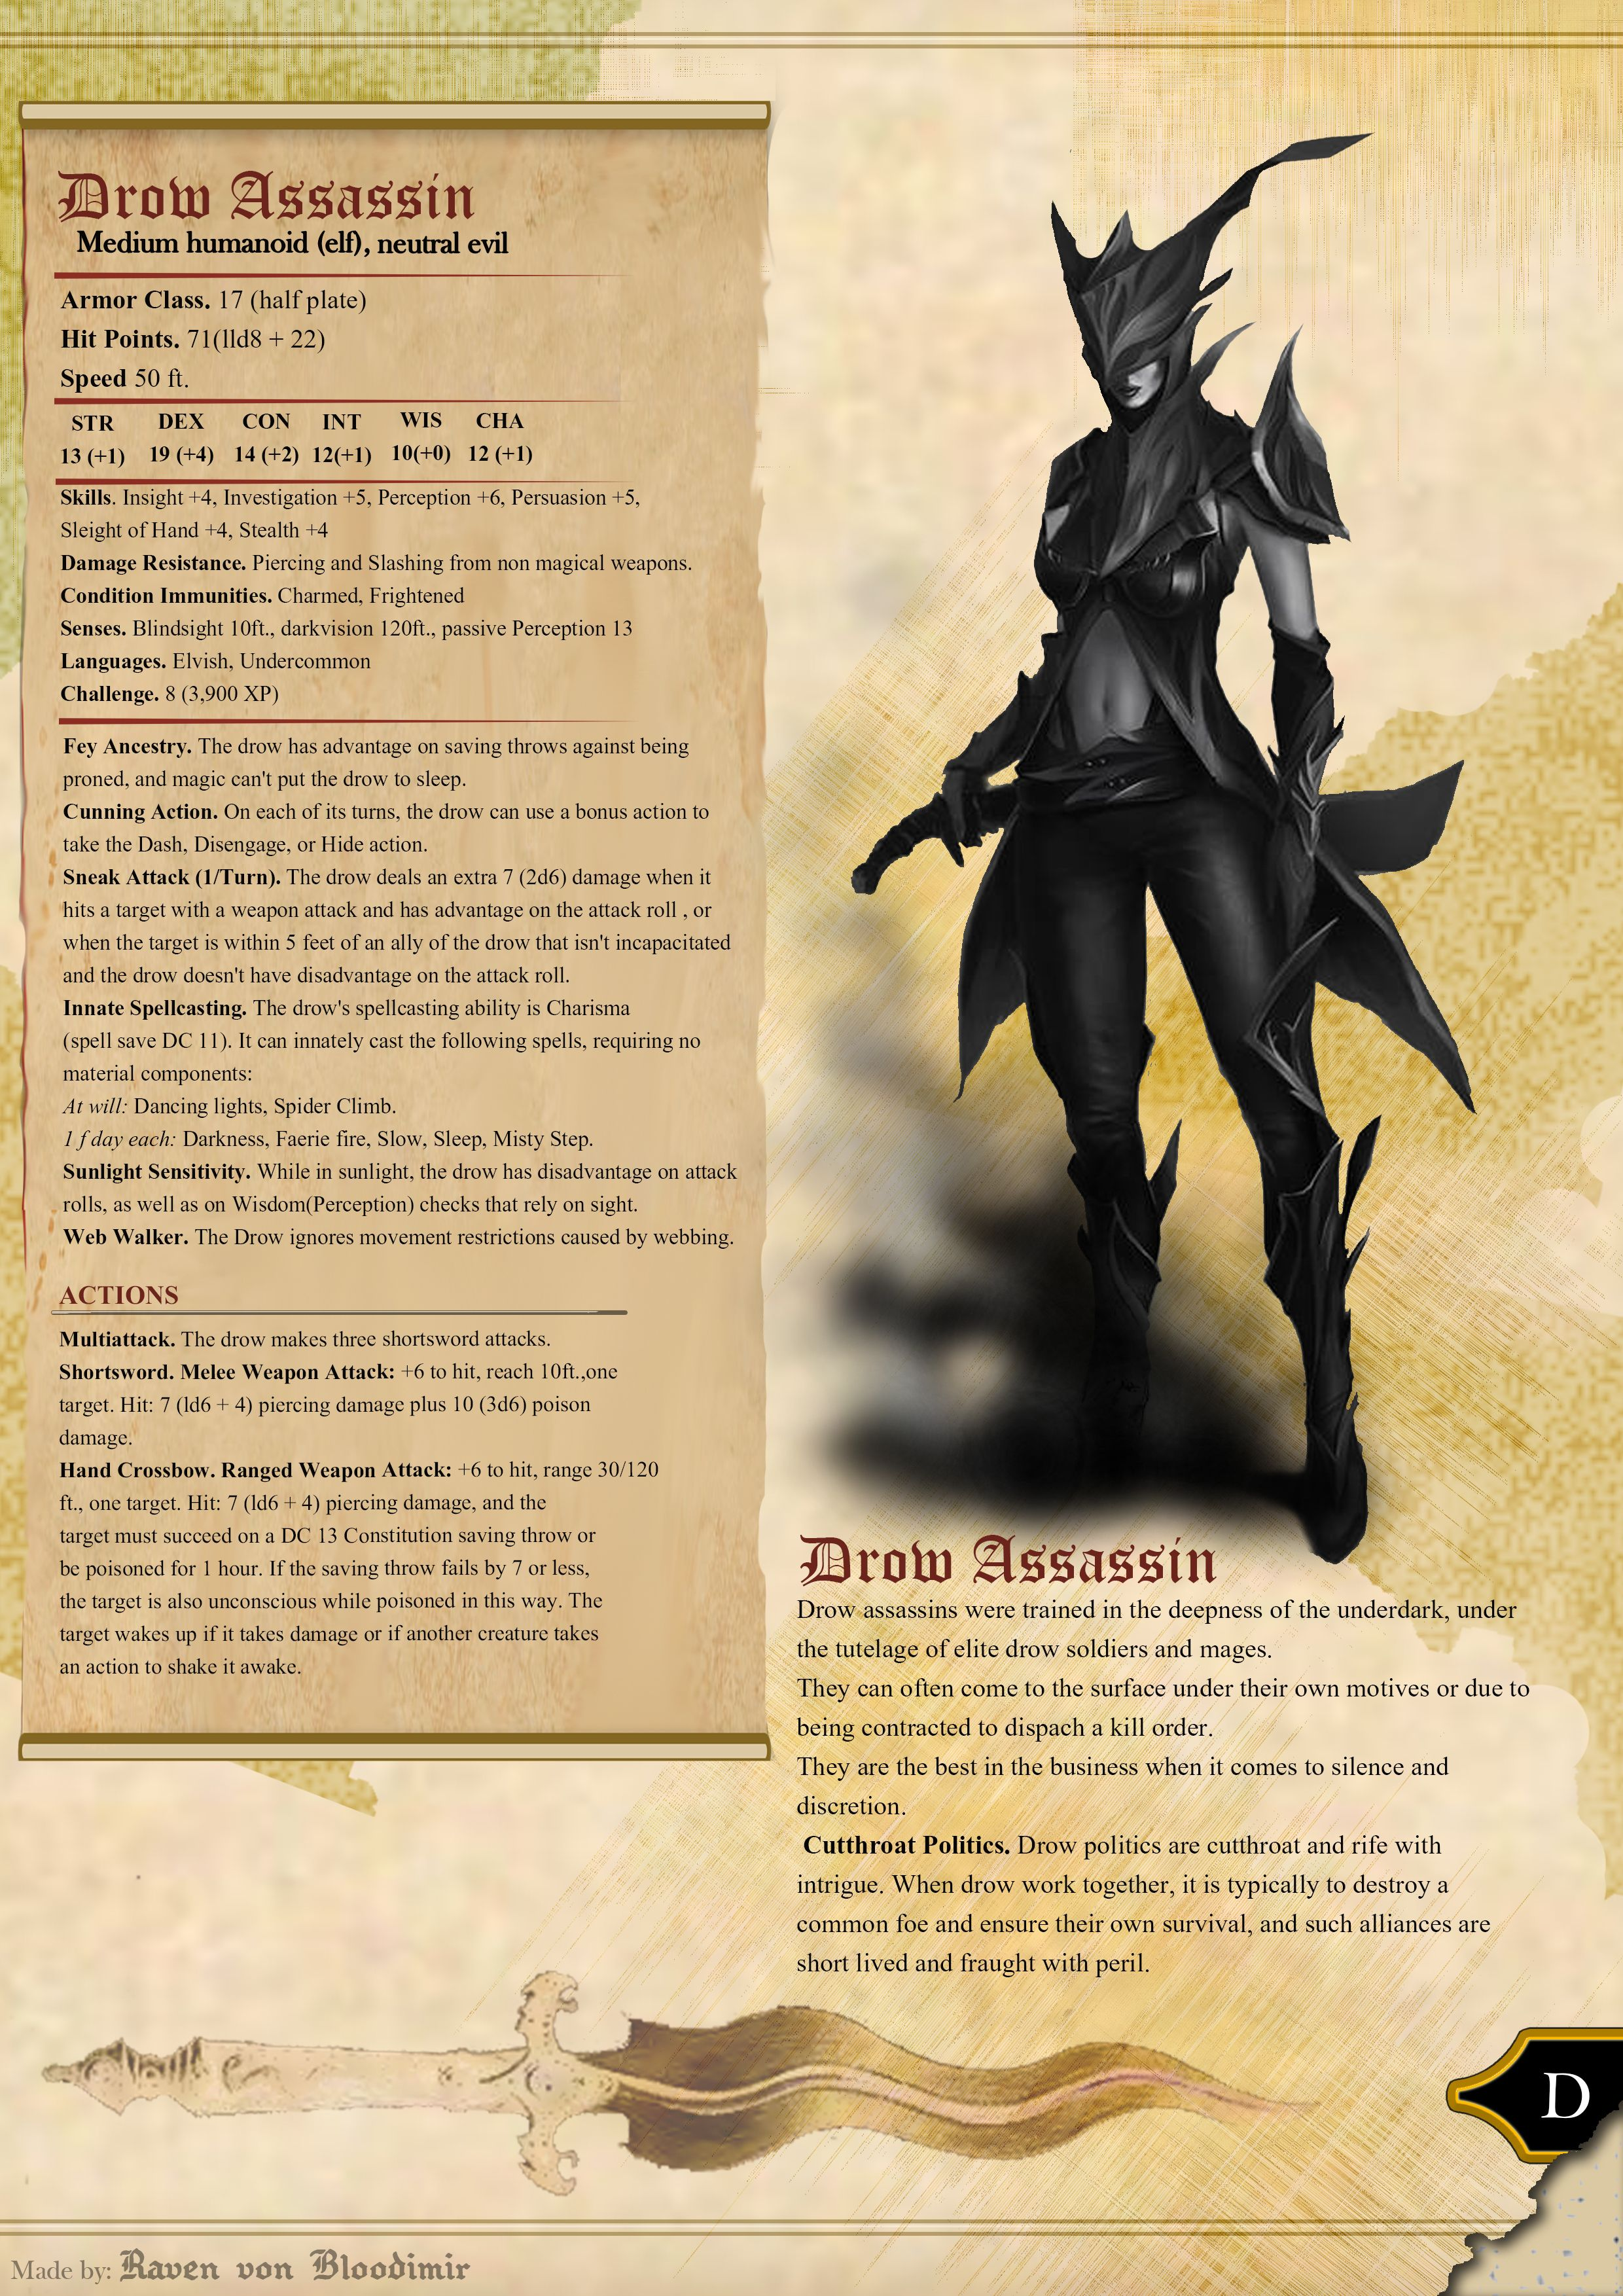 Drow Assassin Dnd 5e By Ravenvonbloodimir Dnd Monsters Dnd Dragons D D Dungeons And Dragons